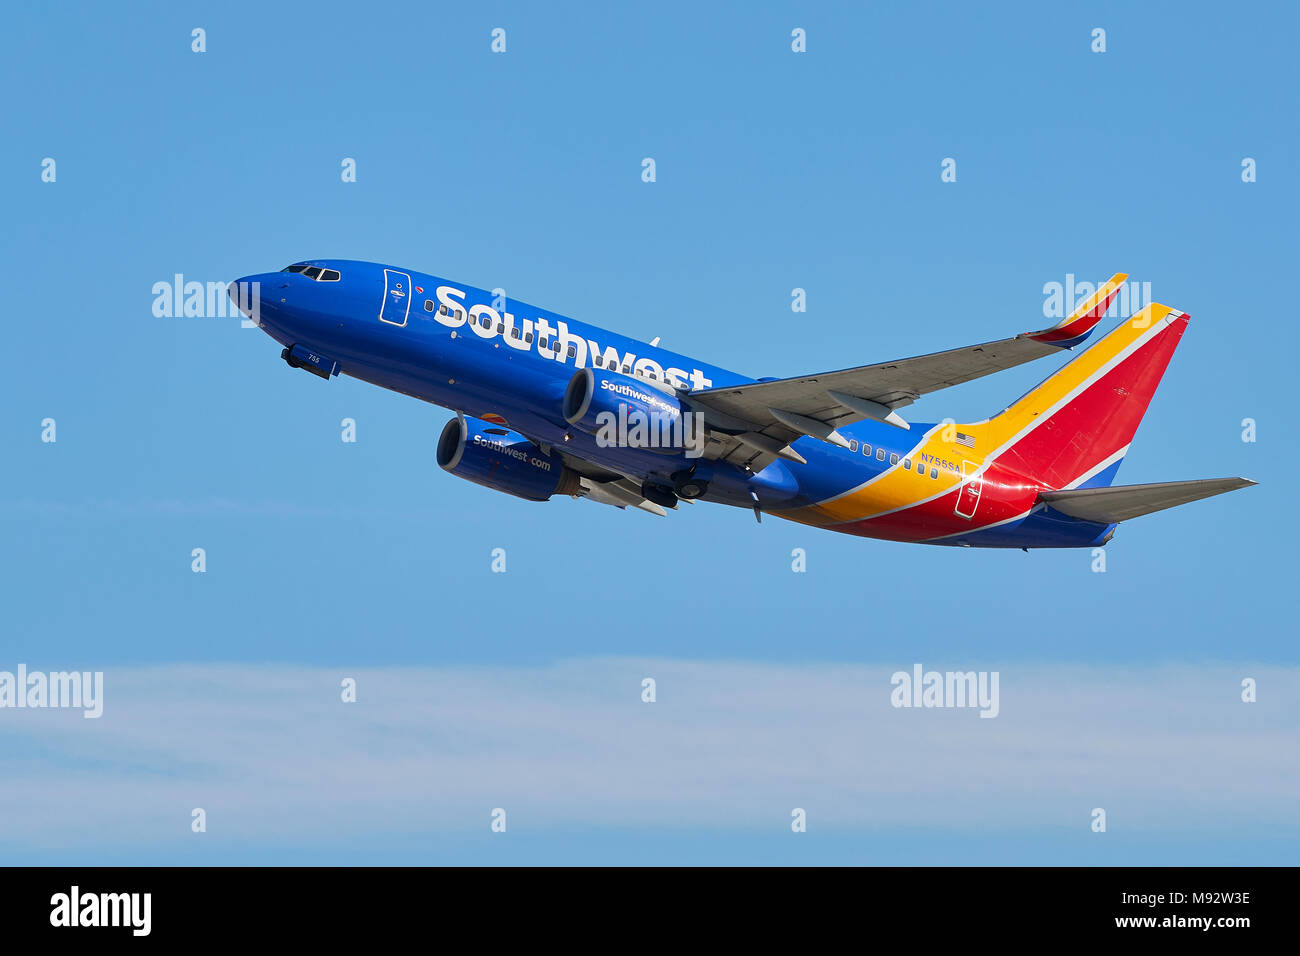 southwest airlines boeing 737-800 airliner taking off from los